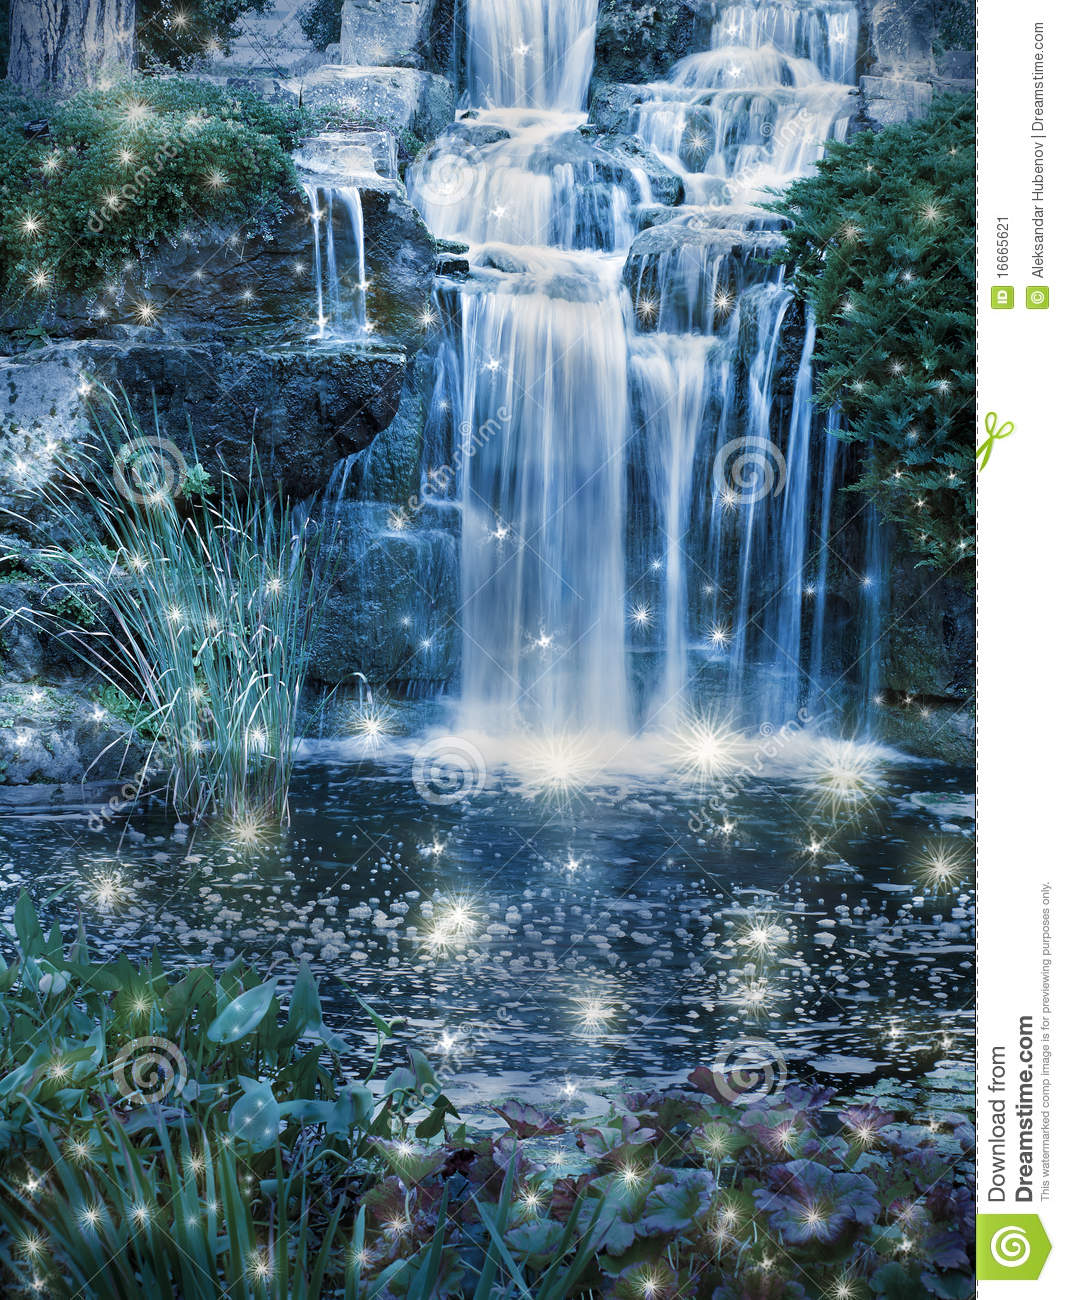 Magic Waterfall Stock Image - Image: 16665621